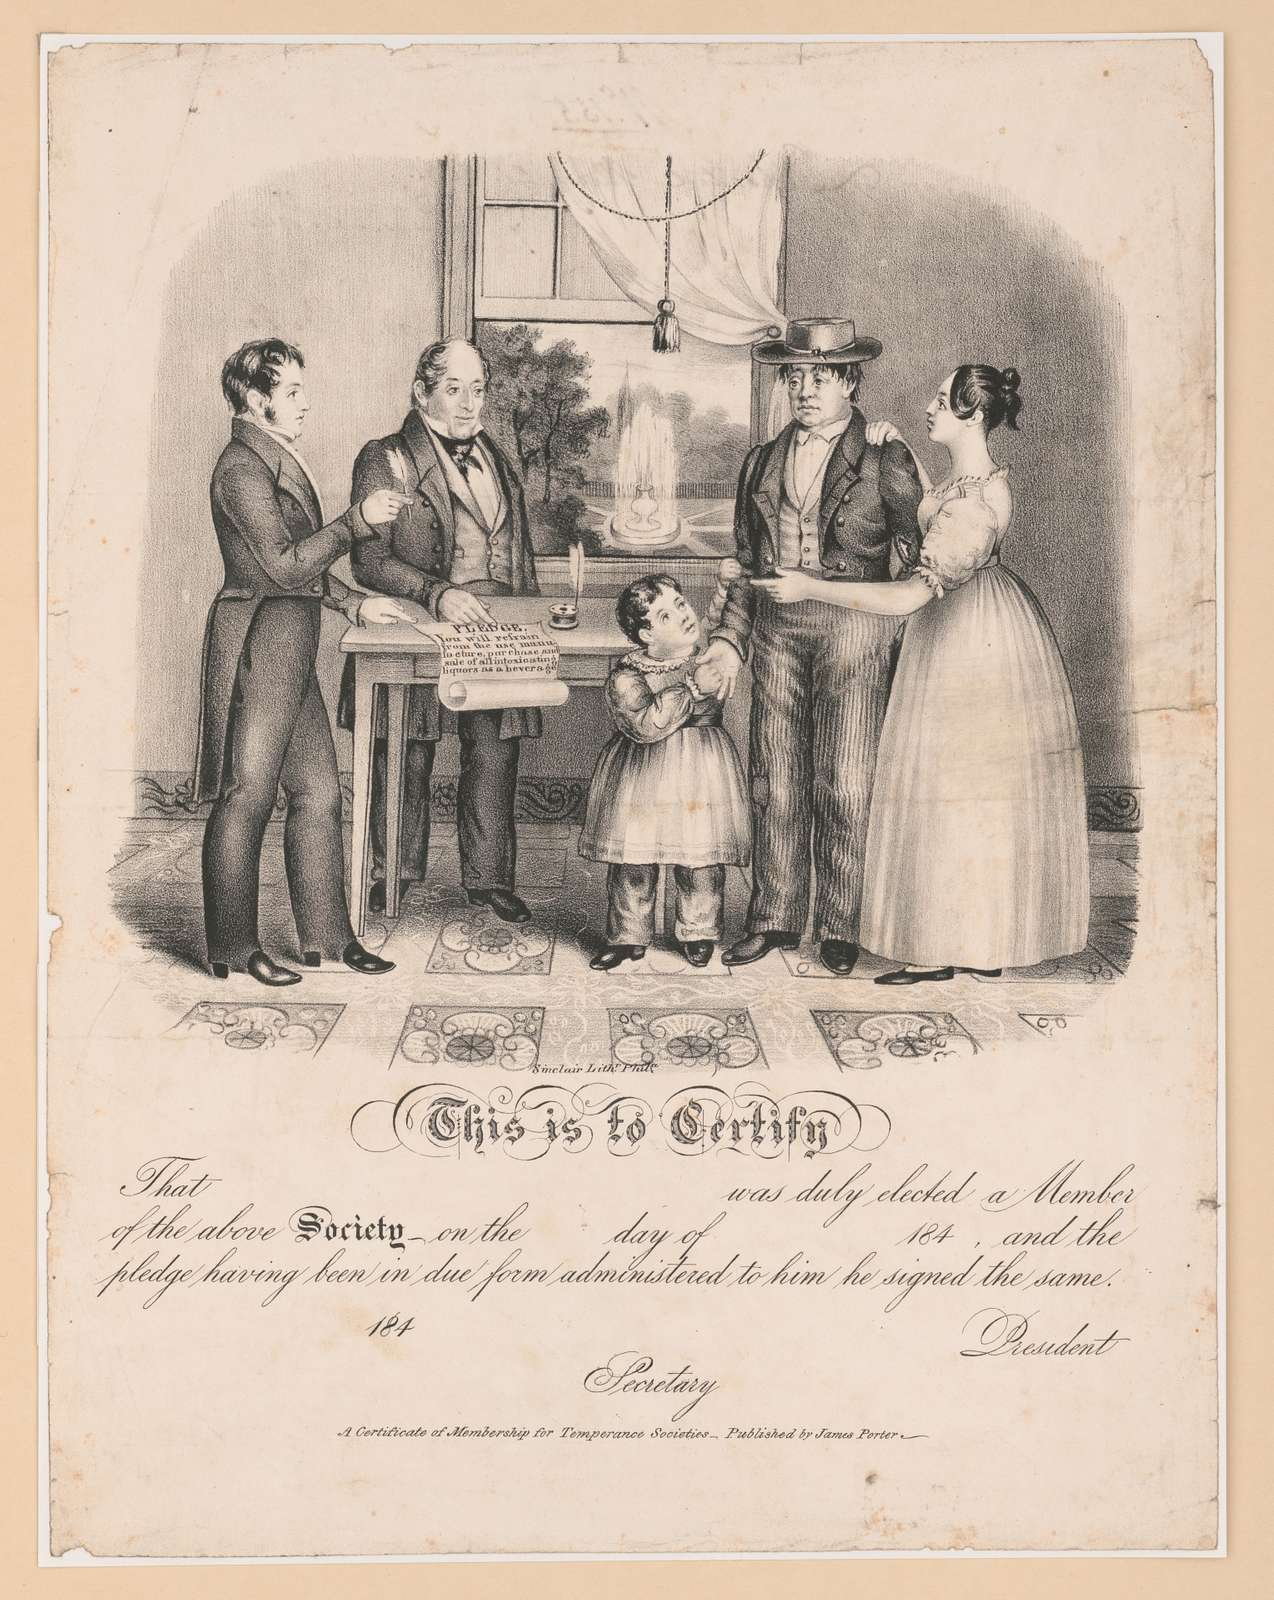 This is to certify that ... was duly elected a member of the above society on the ... day of ... 184-, and the pledge having been in due form administered to him he signed the same / Sinclair Lithr. Phila.